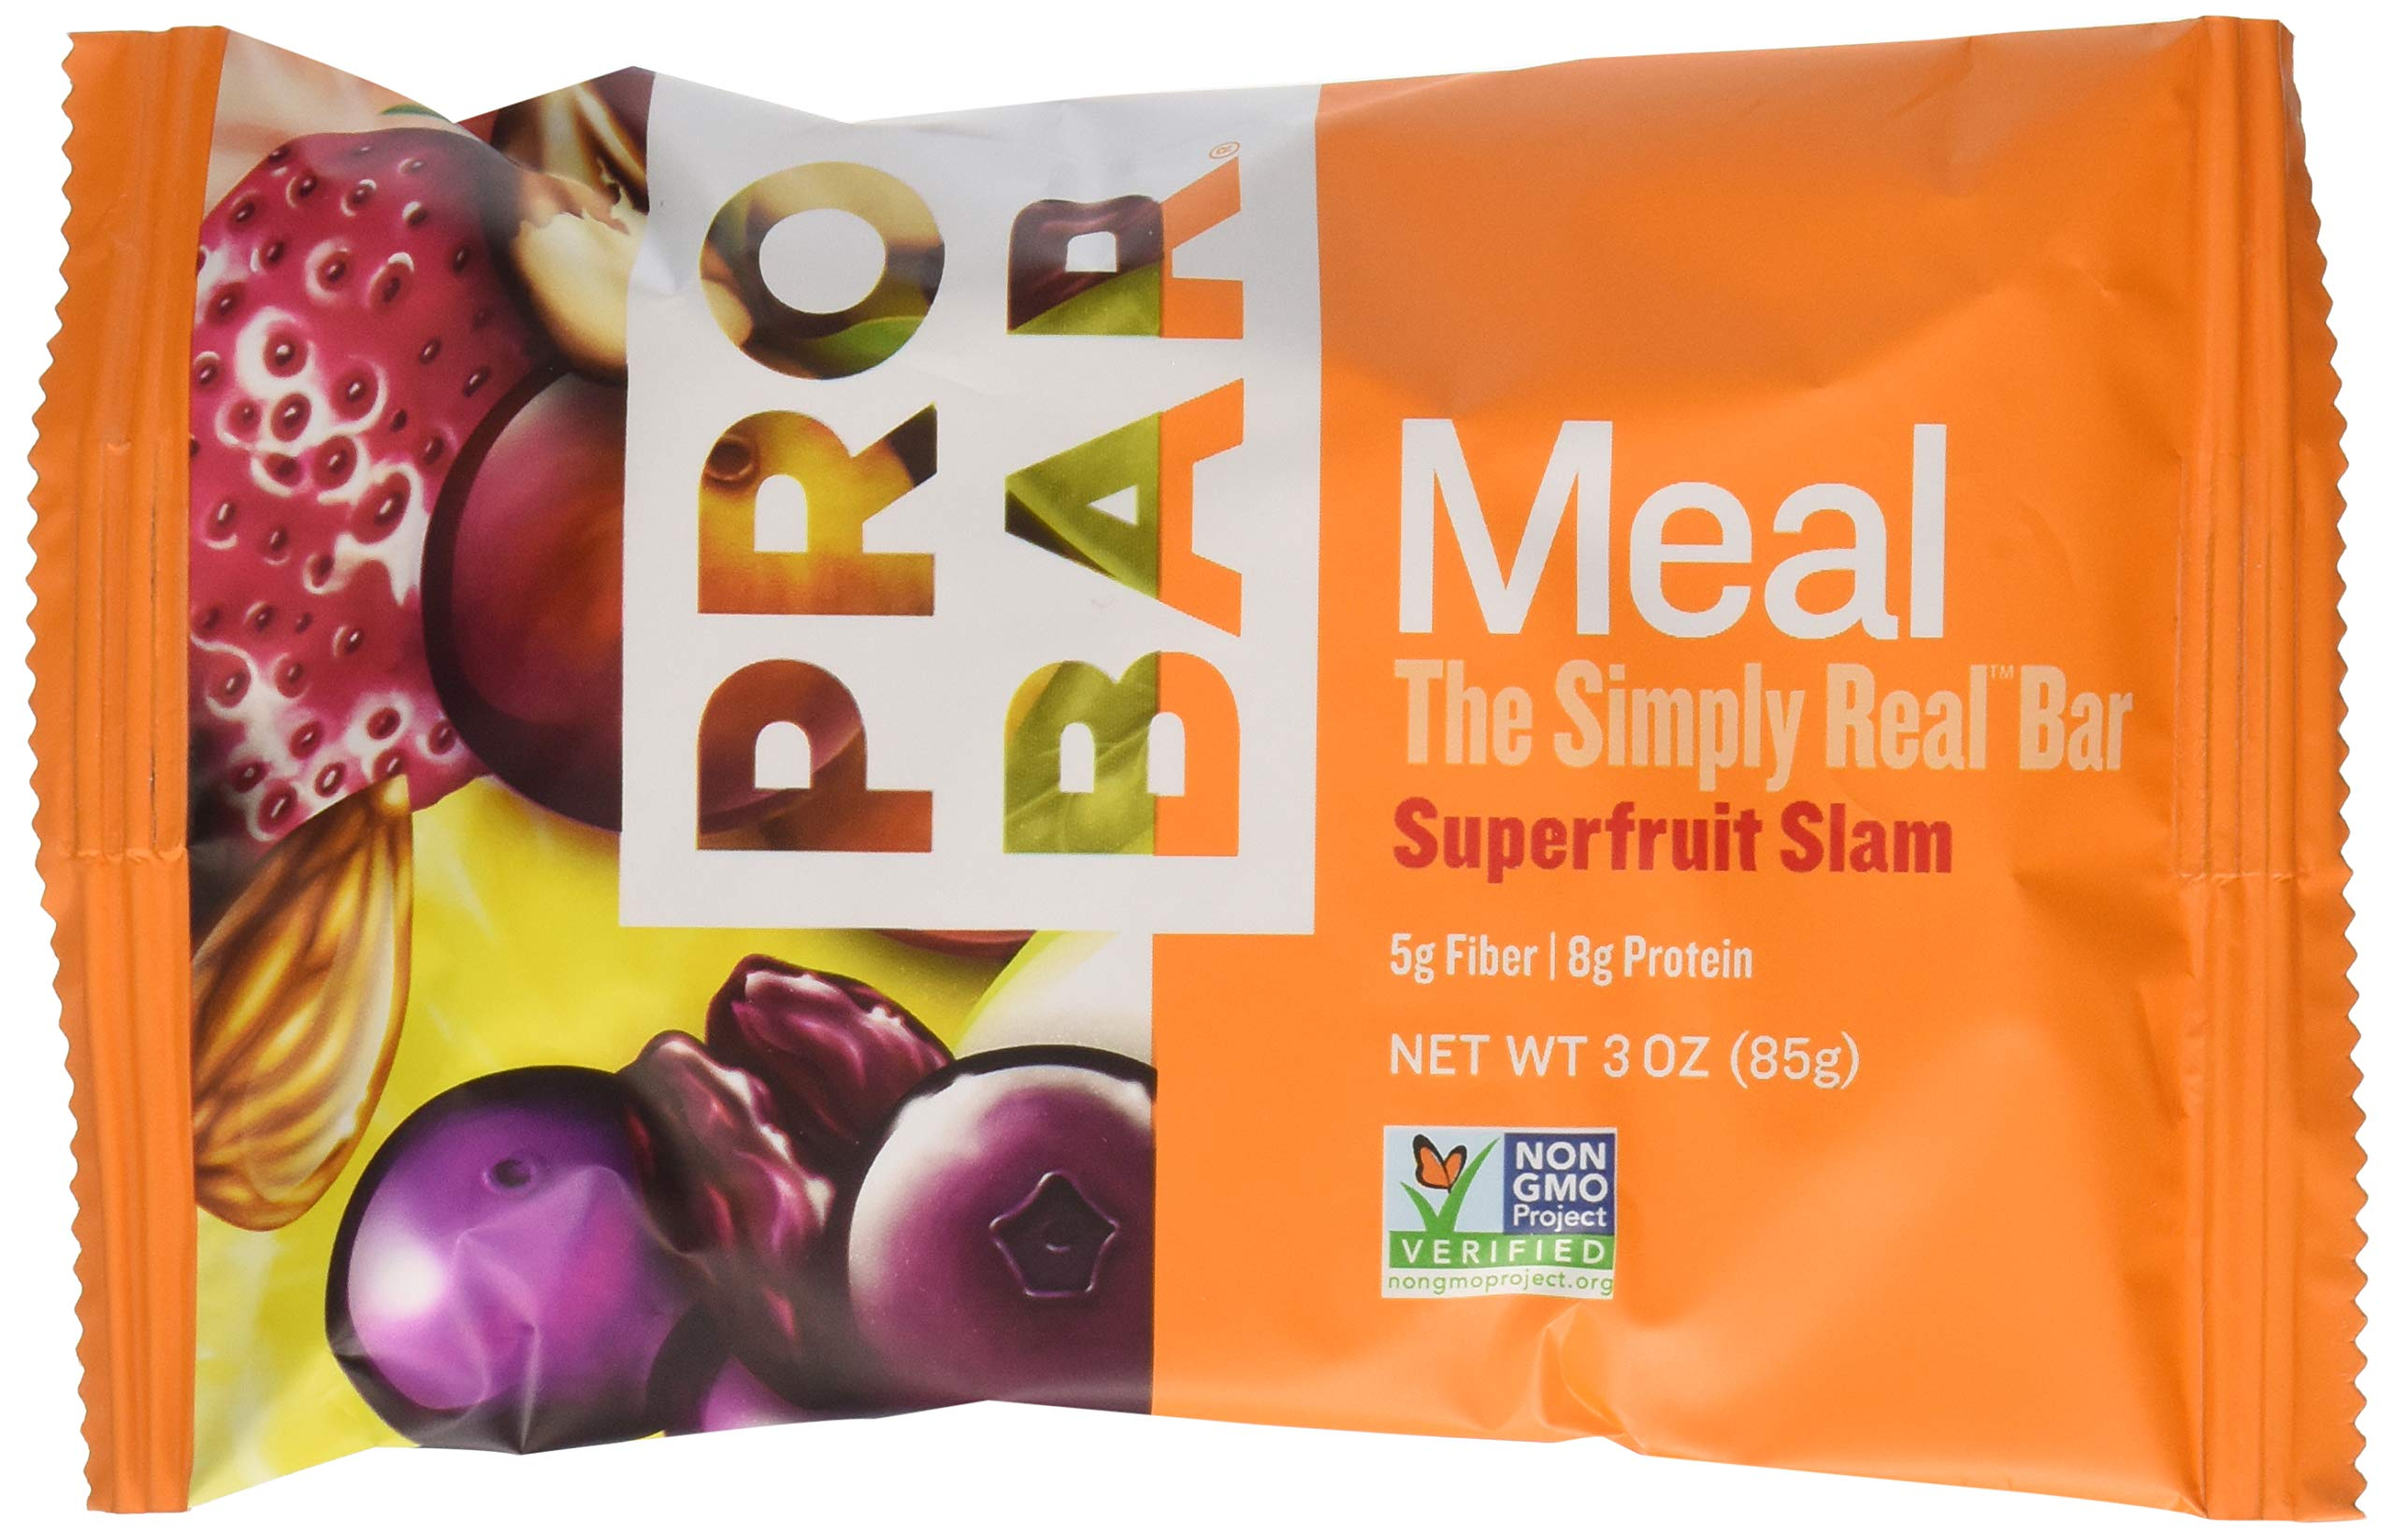 PROBAR - Meal Bar - Superfruit Slam - Organic Oats, Nuts, Seeds, Gluten Free, Non-GMO Project Verified, Plant-Based Whole Food Ingredients, 8g Protein, 5g Fiber - Pack of 12 Bars by Probar